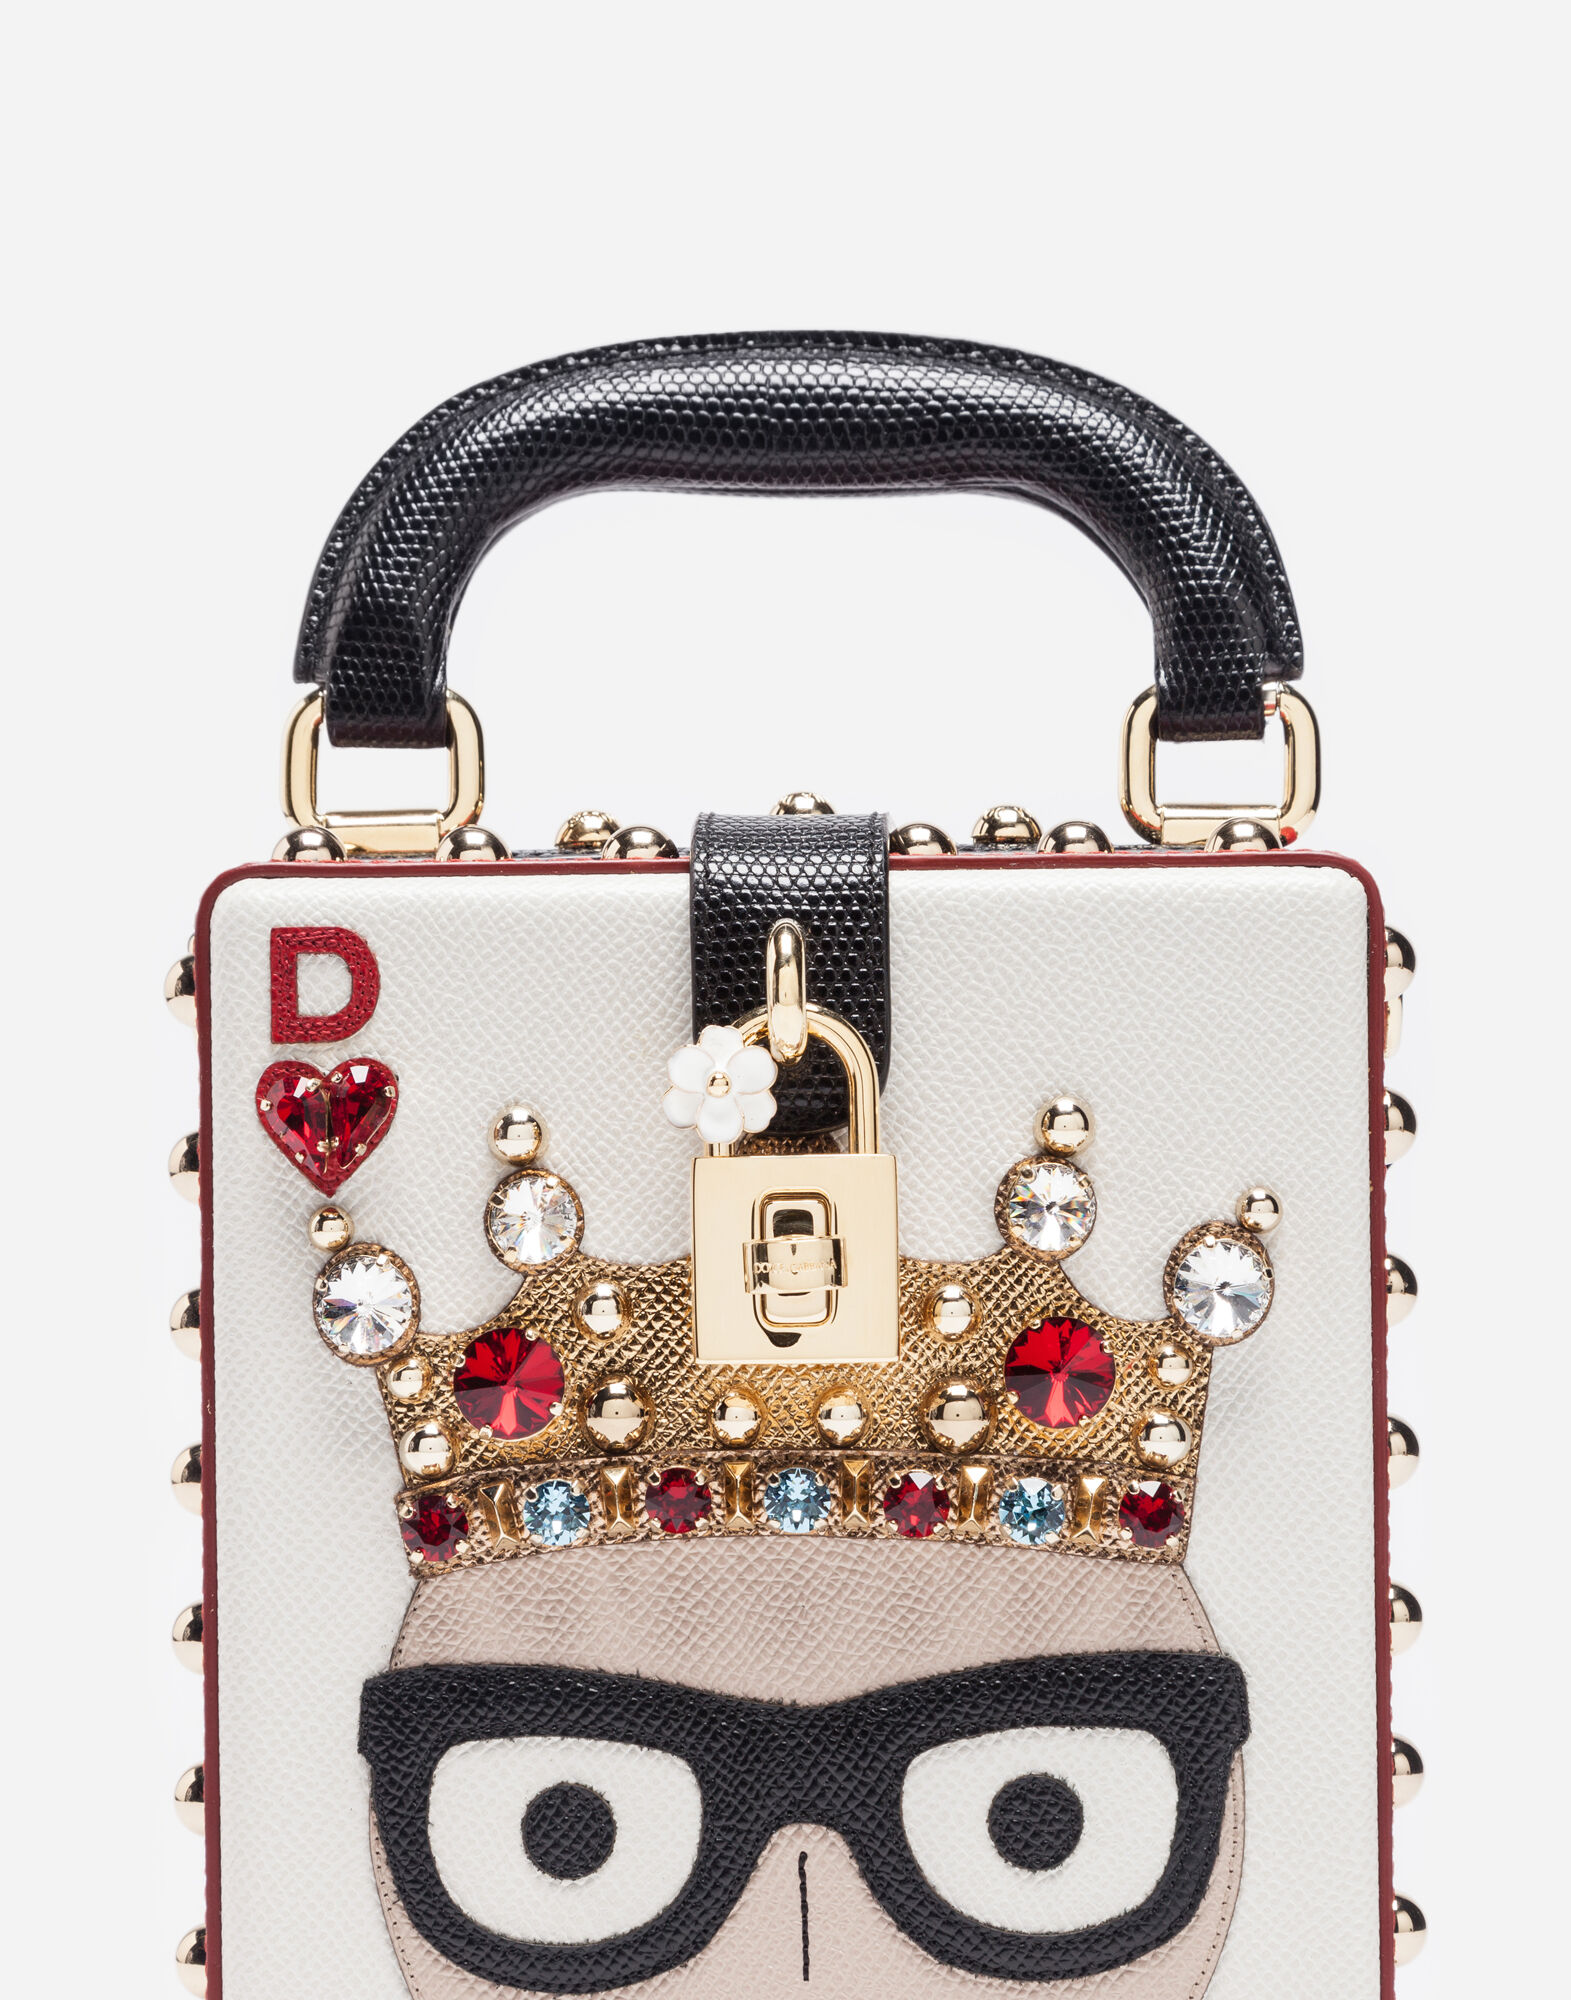 Dolce&Gabbana DOLCE BOX BAG WITH PATCHES OF THE DESIGNERS